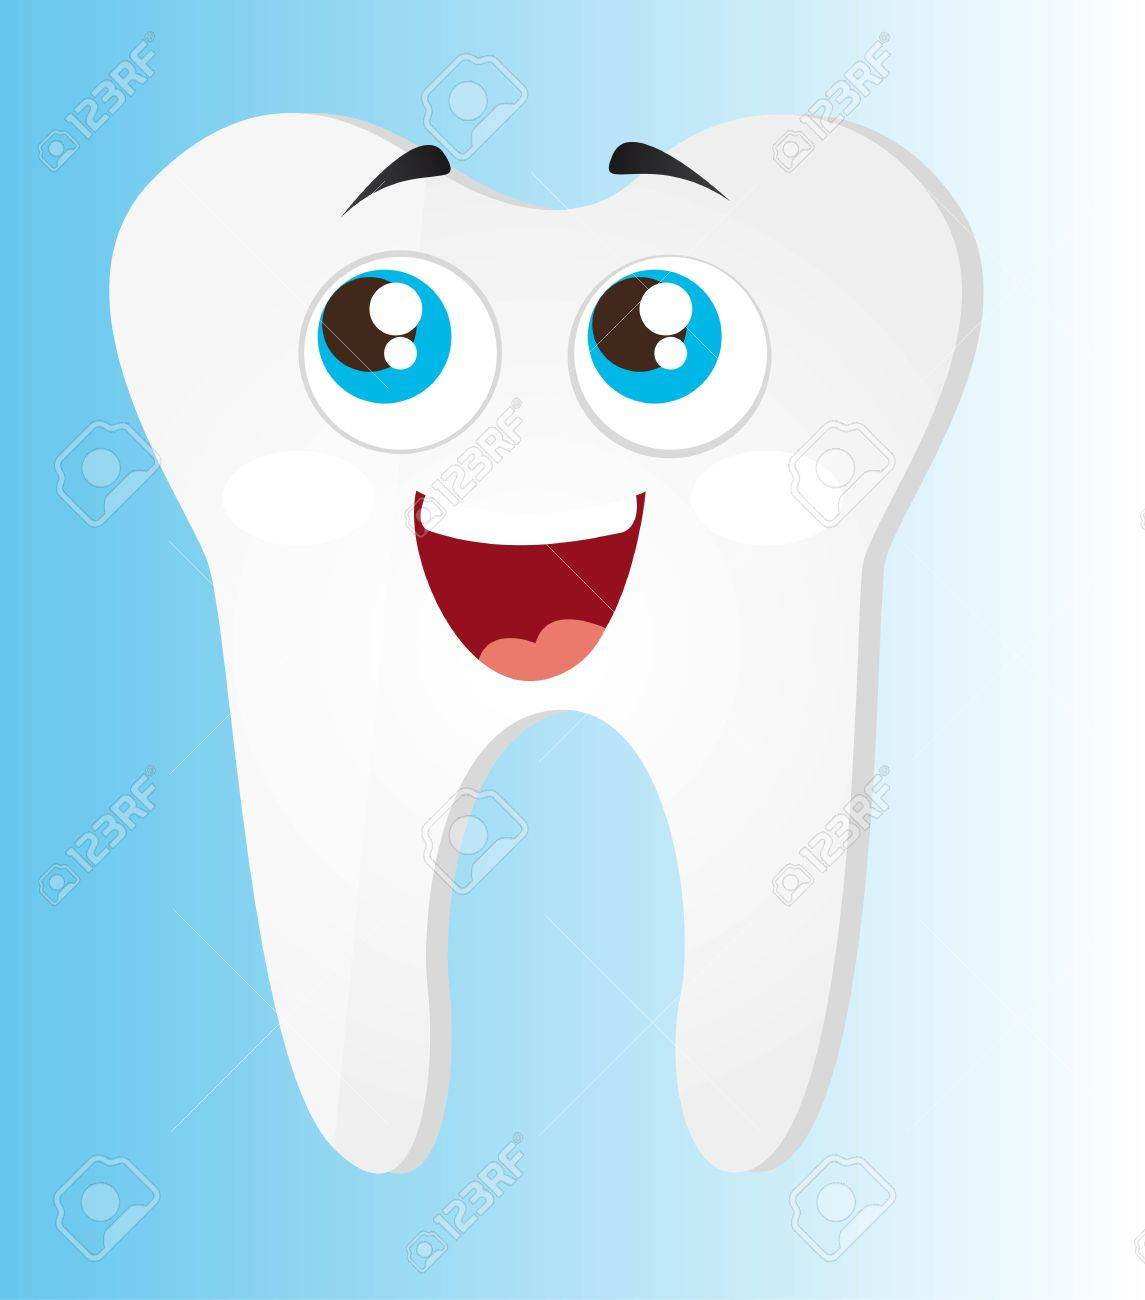 tooth cartoon with eyes and mouth vector illustration Stock Vector - 11657380